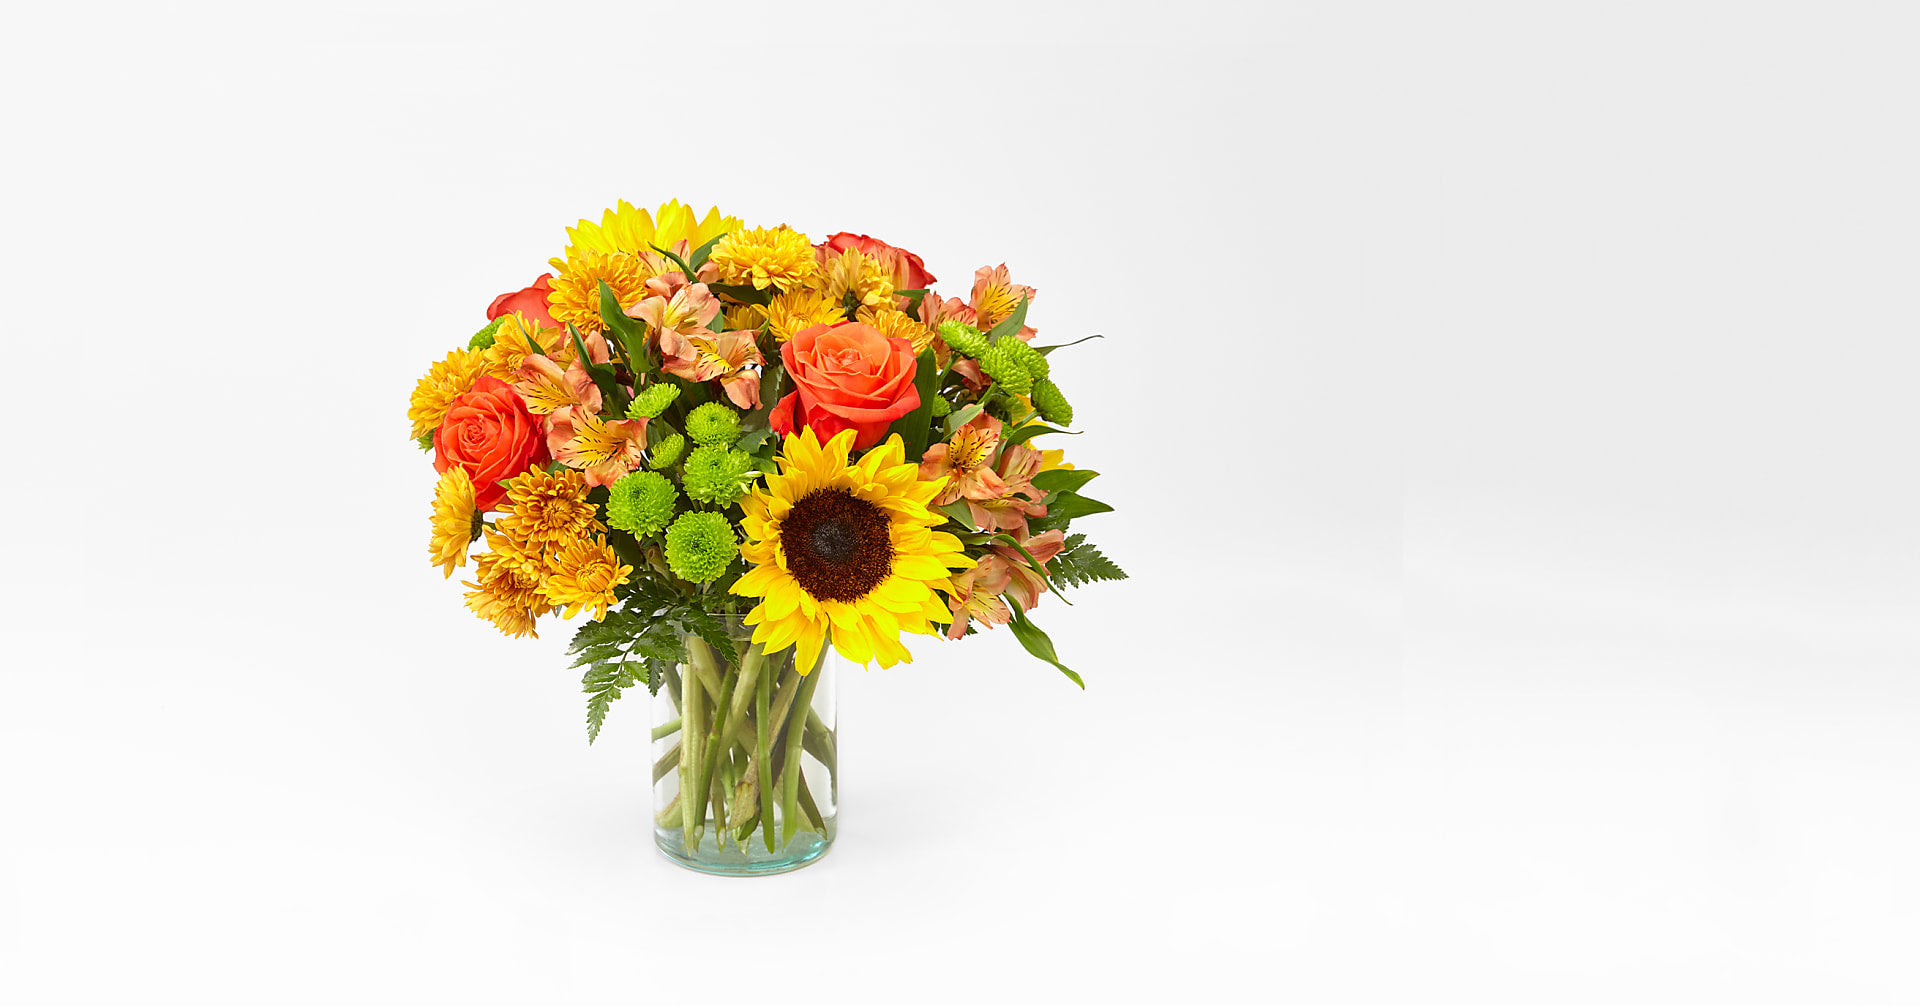 Golden Hour Bouquet - Image 1 Of 2